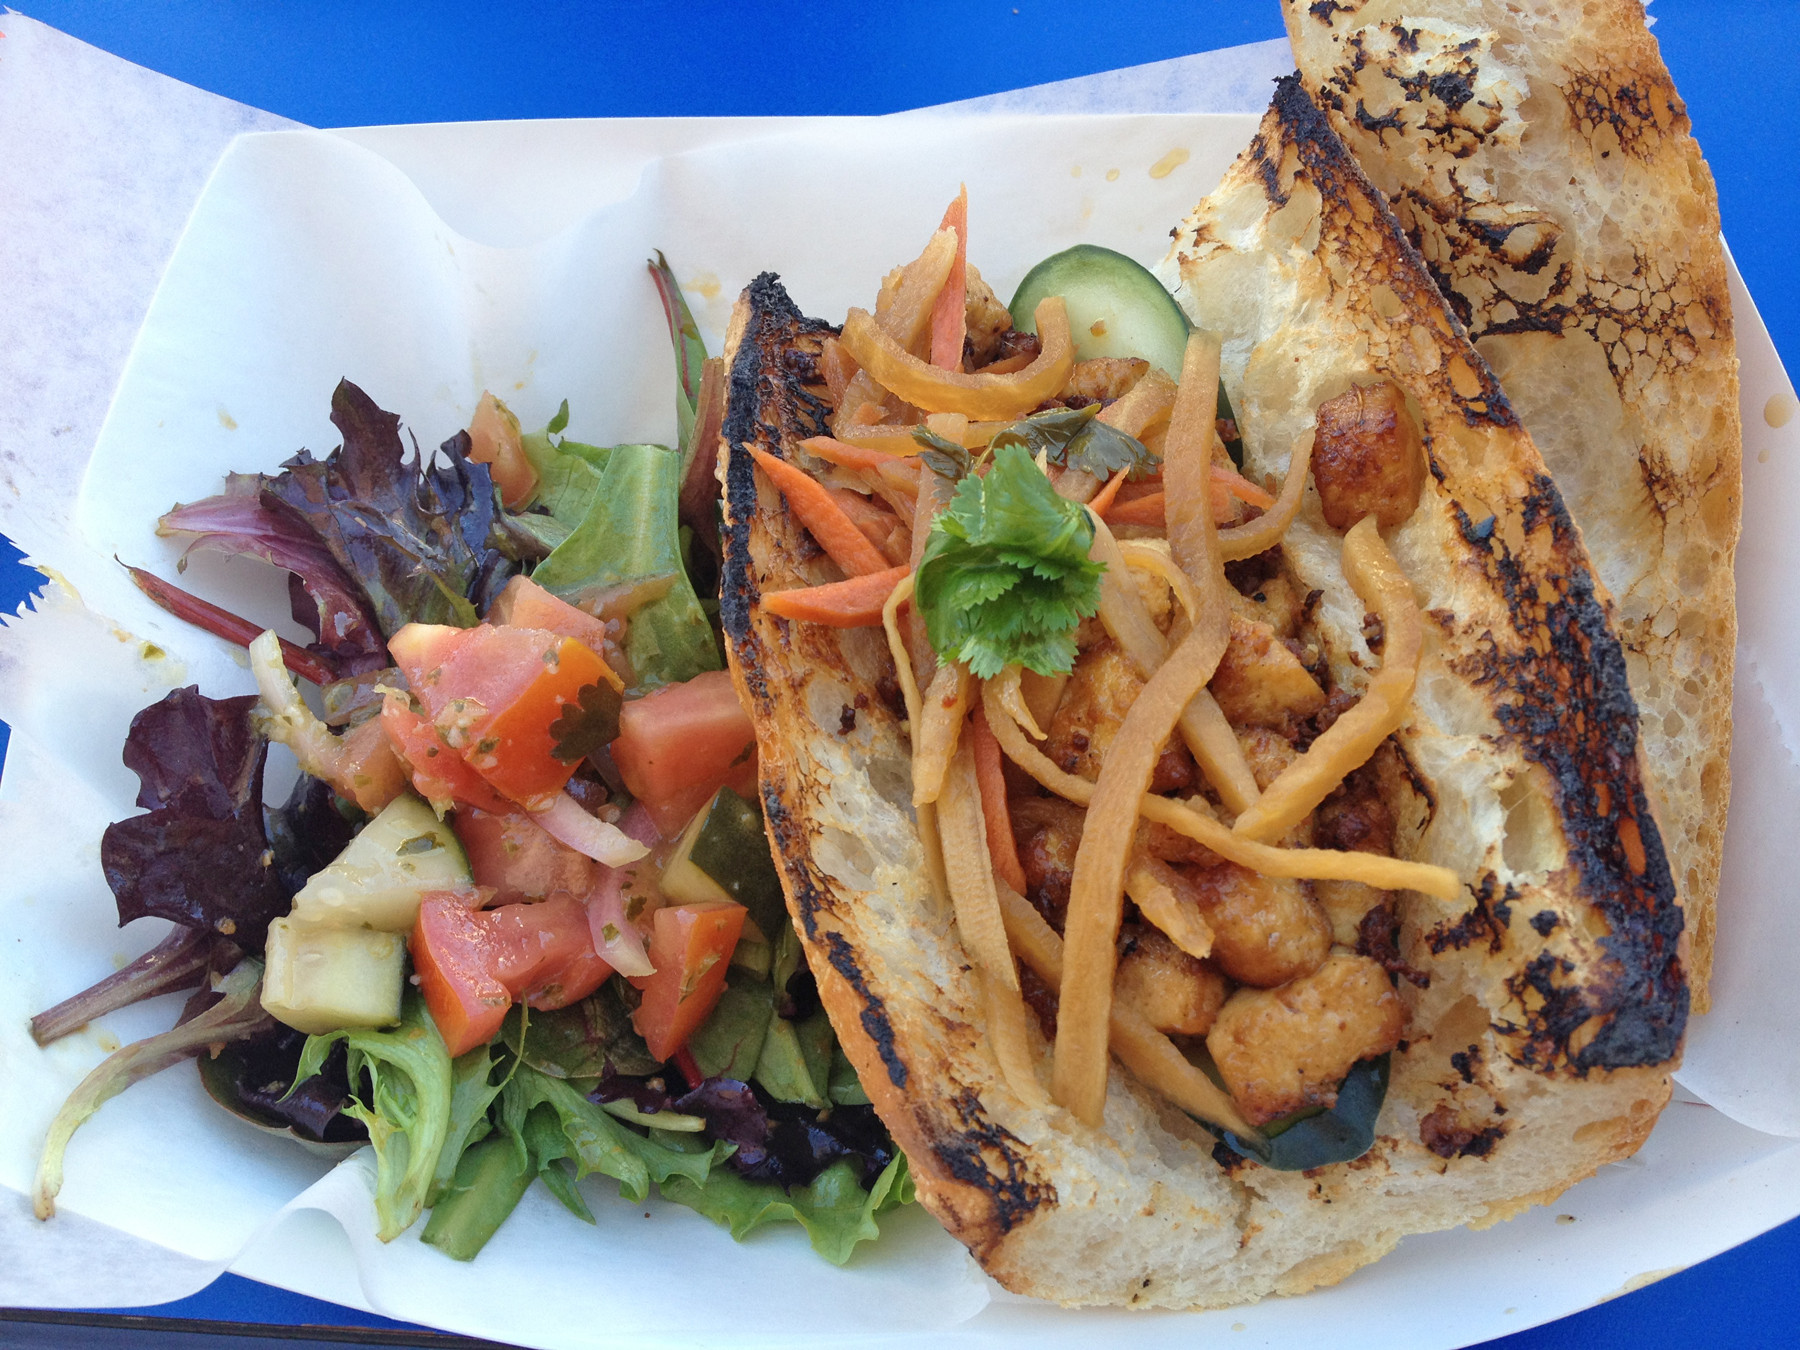 Try the tofu and pickled veggie bahn mi with a side of salad at Chomp Chomp.